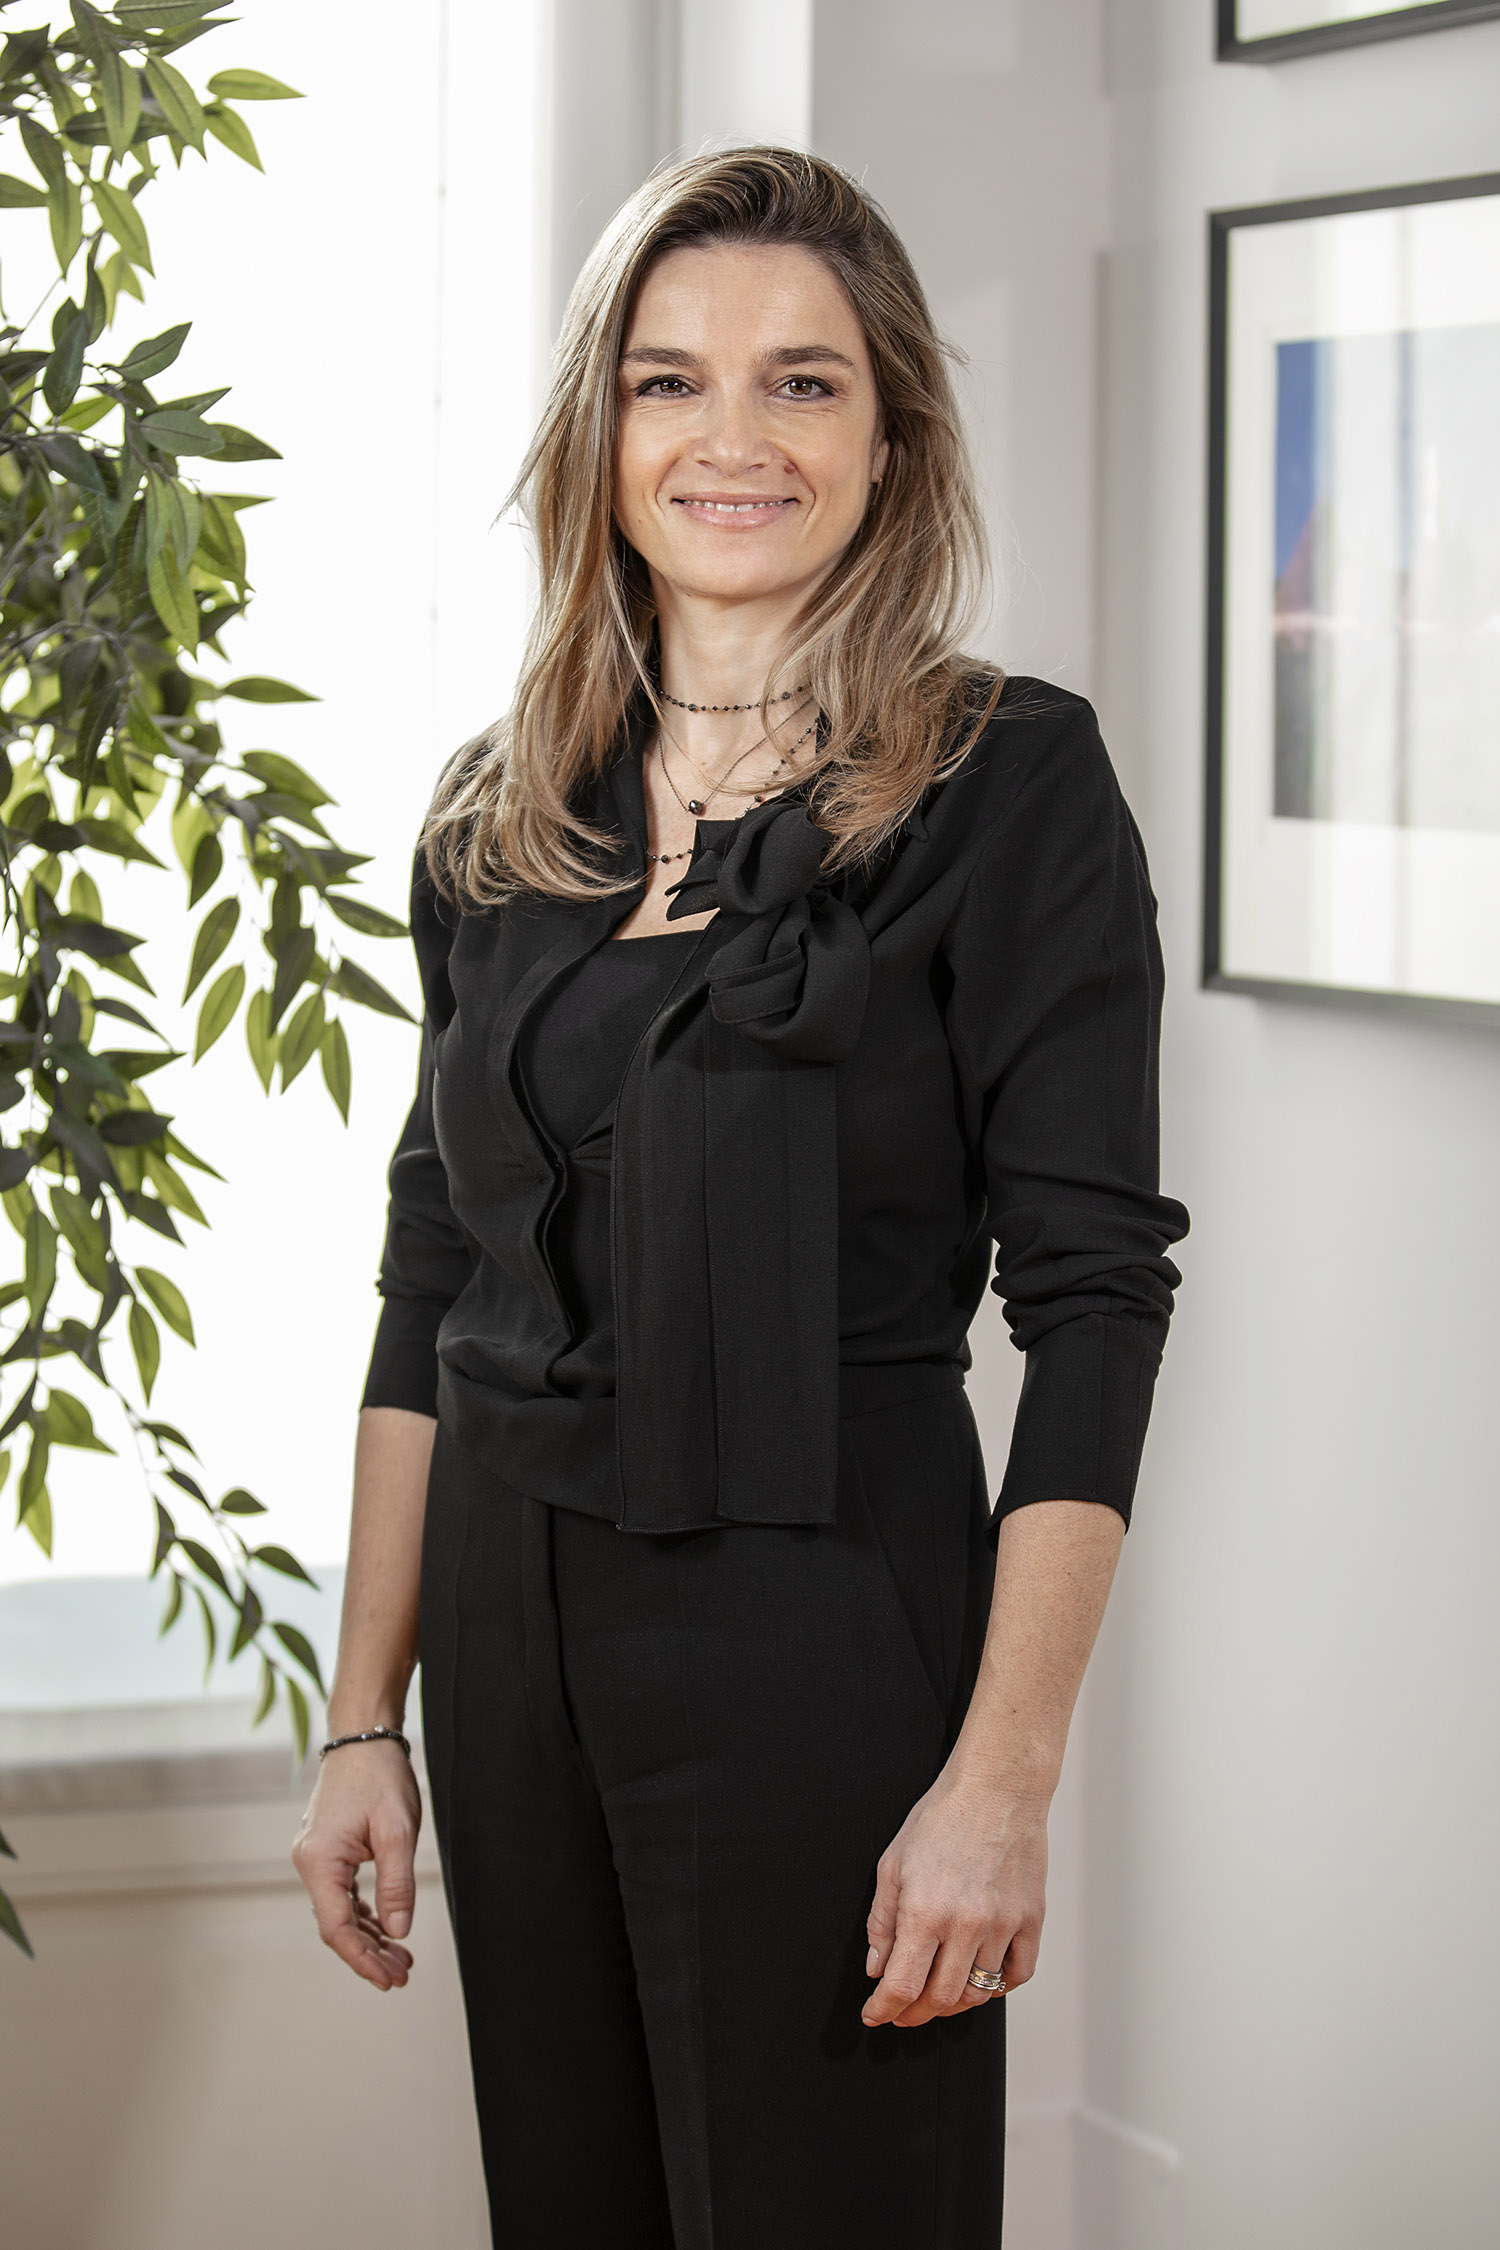 Wise Equity - Valentina Franceschini - Partner